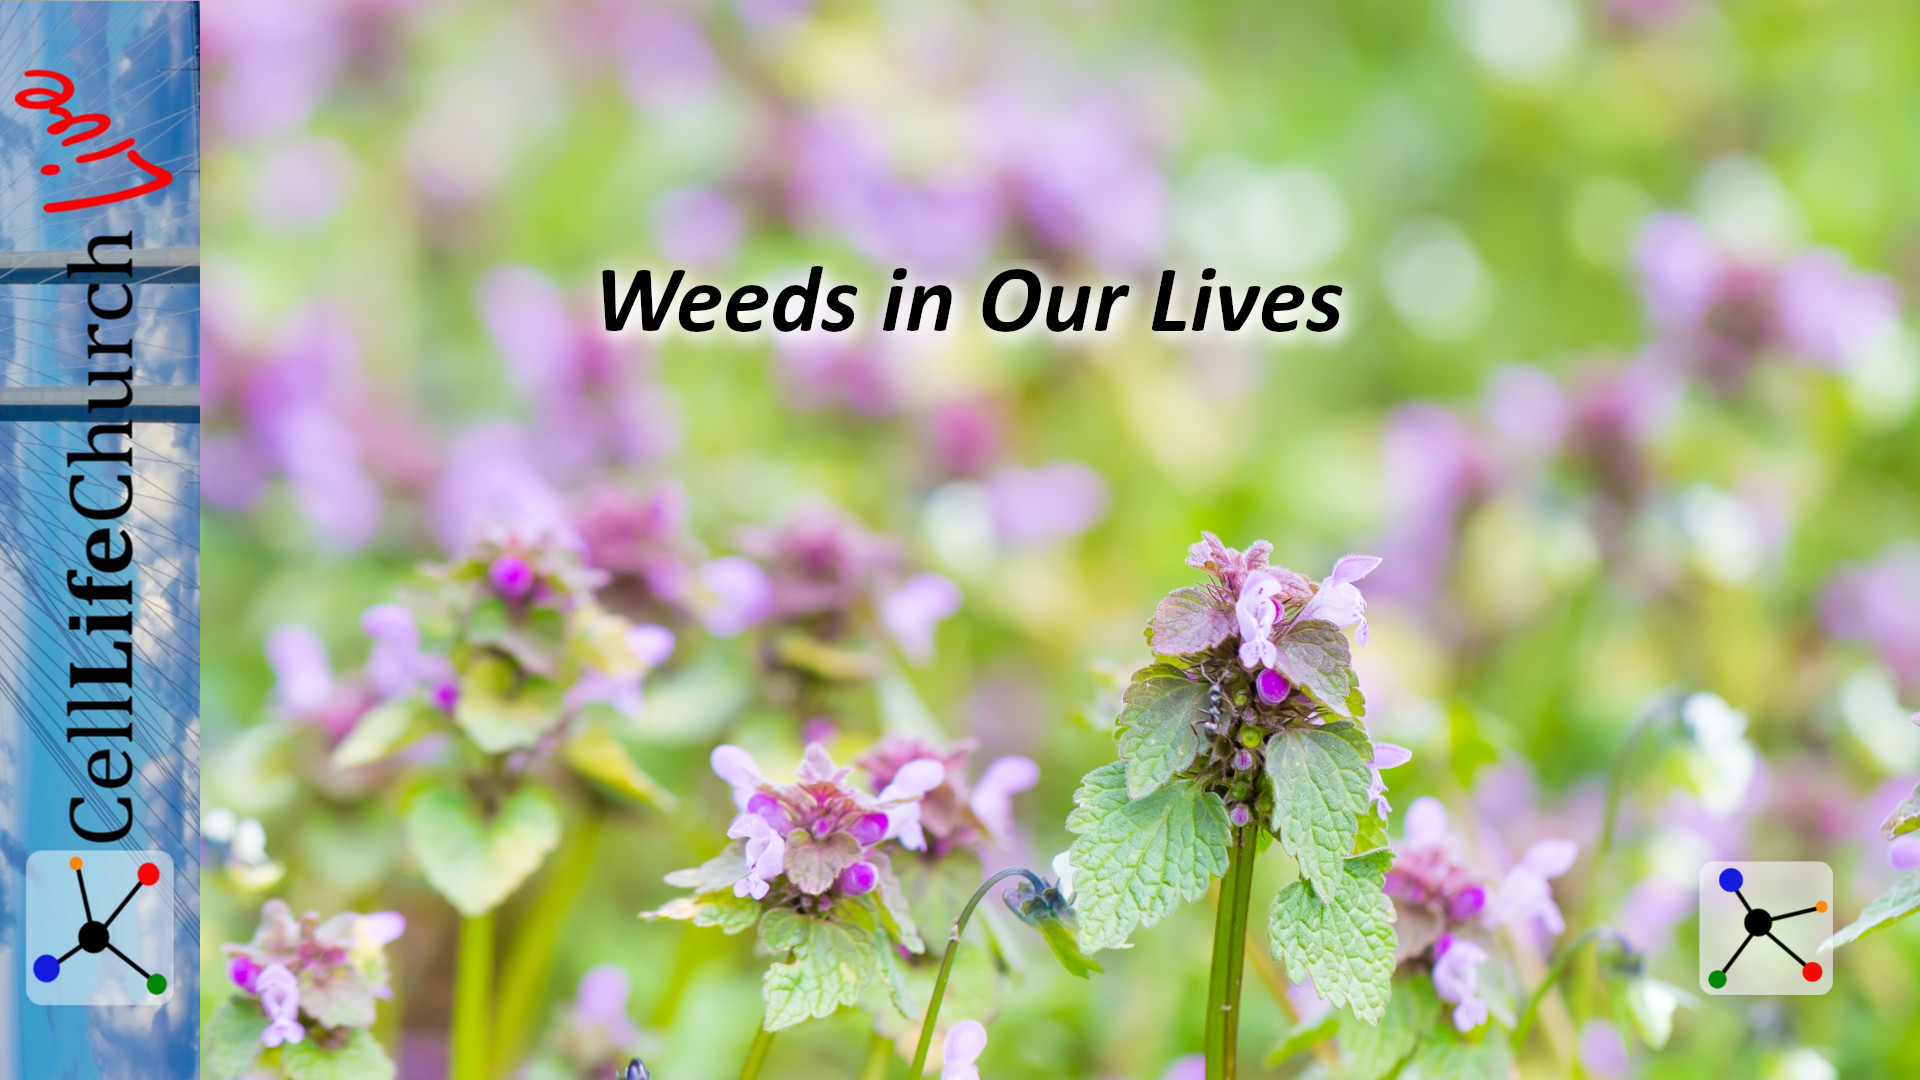 Weeds in Our Lives